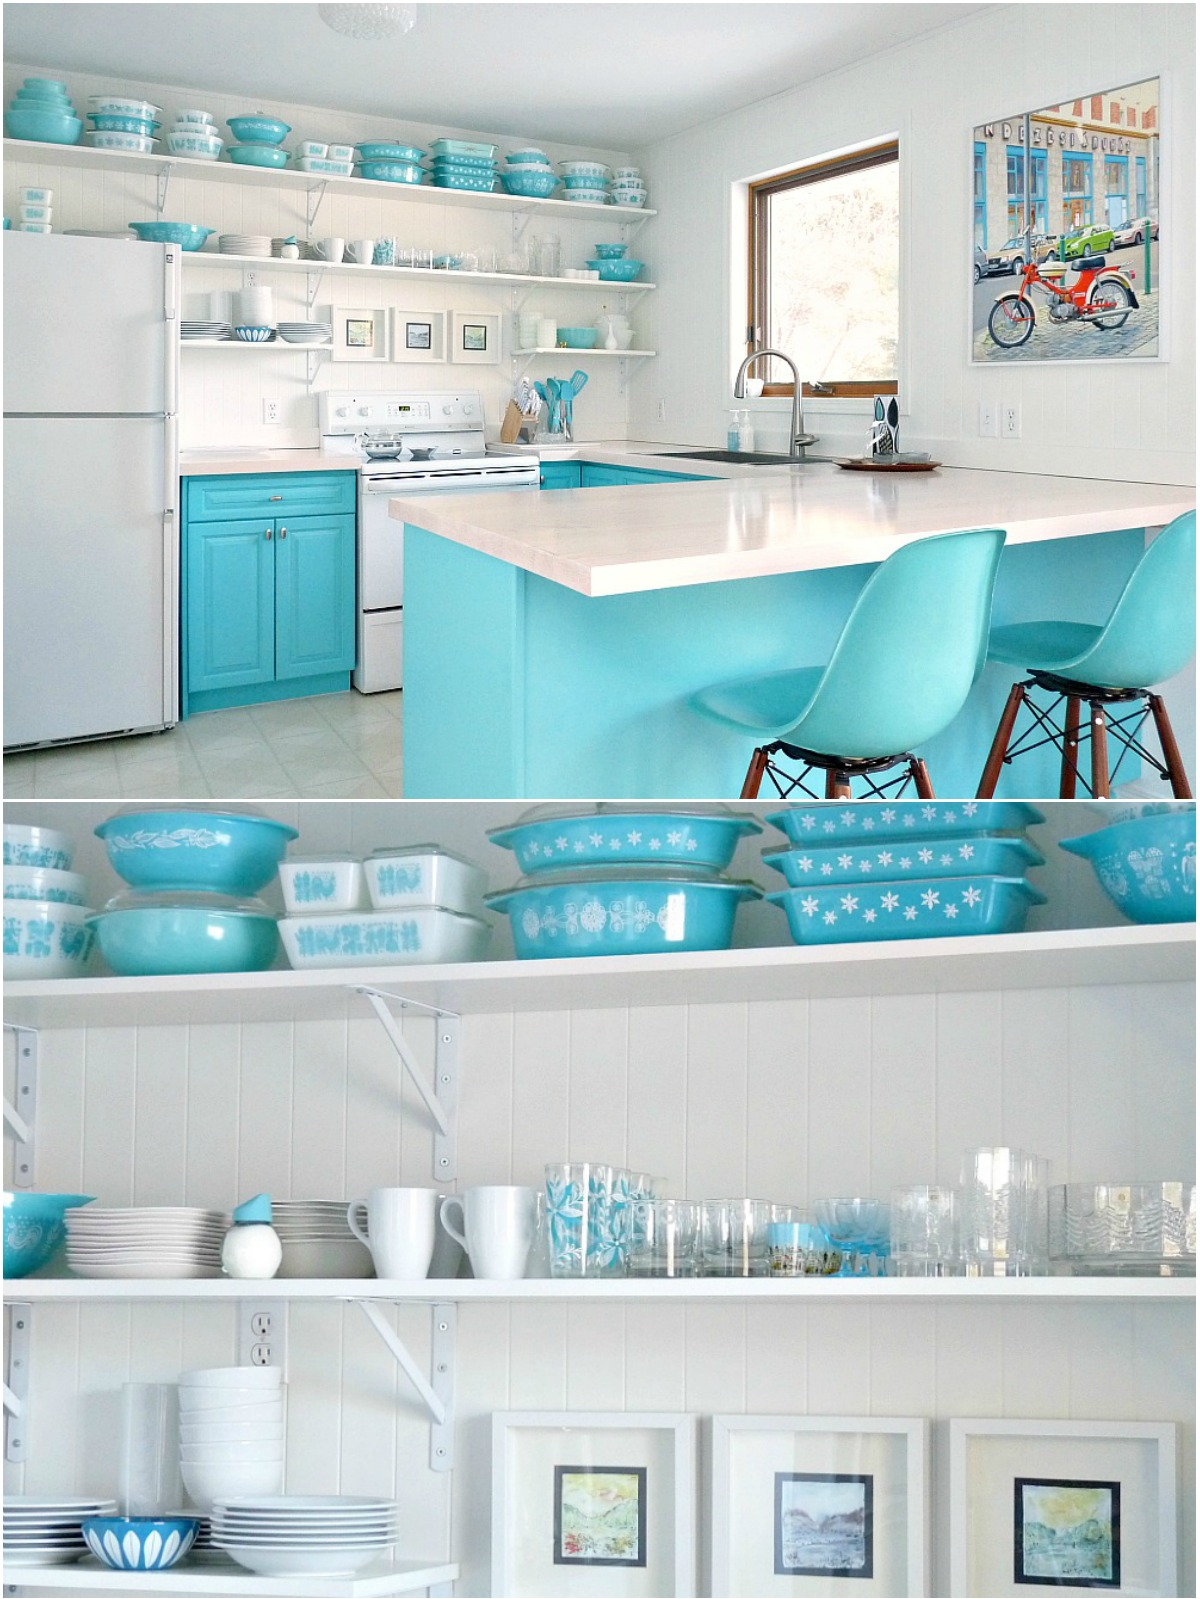 Huge Turquoise Vintage Pyrex Collection on Display in Turquoise Kitchen